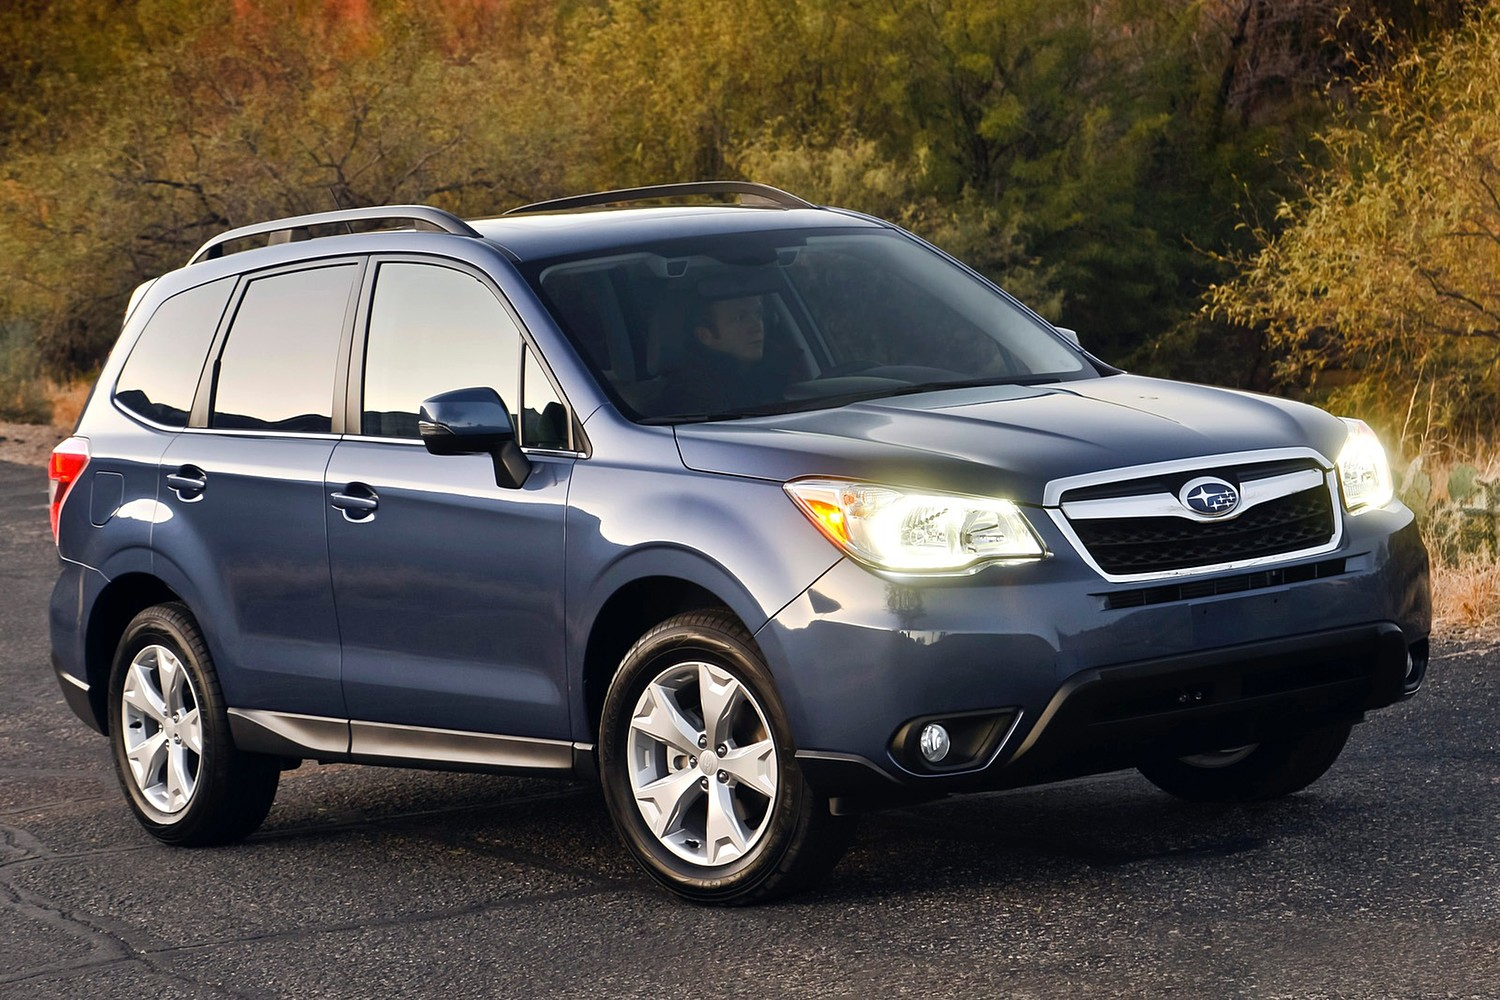 2015 Subaru Forester 2.5i Limited PZEV 4dr SUV Exterior Shown